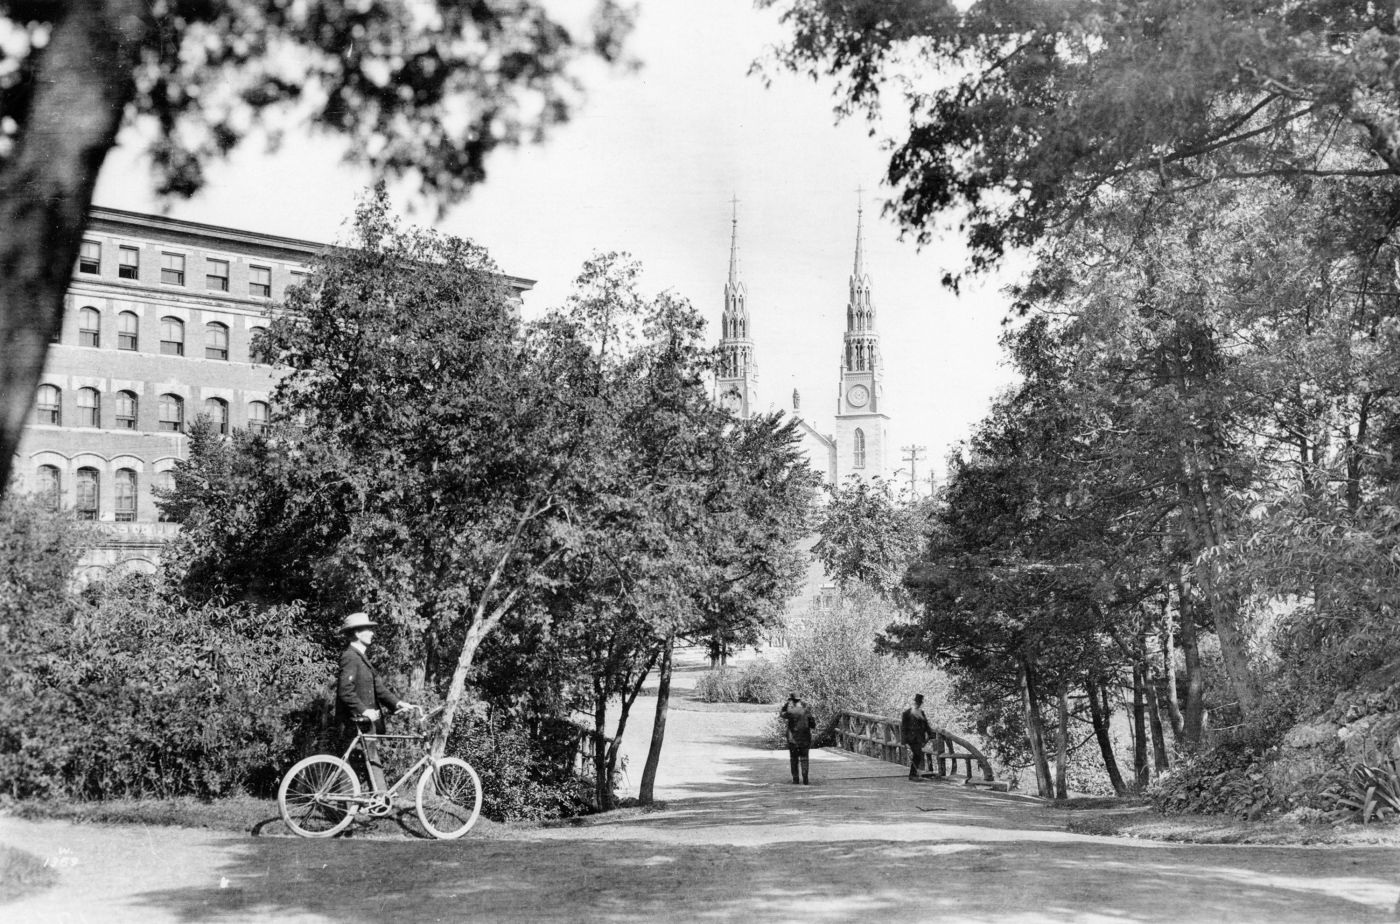 Black and white photograph showing a man walking beside his bicycle. He is moving toward a tree-lined esplanade leading to a wooden bridge. Two men are crossing the bridge on foot. Two steeples of a large church are visible in the background between the trees.